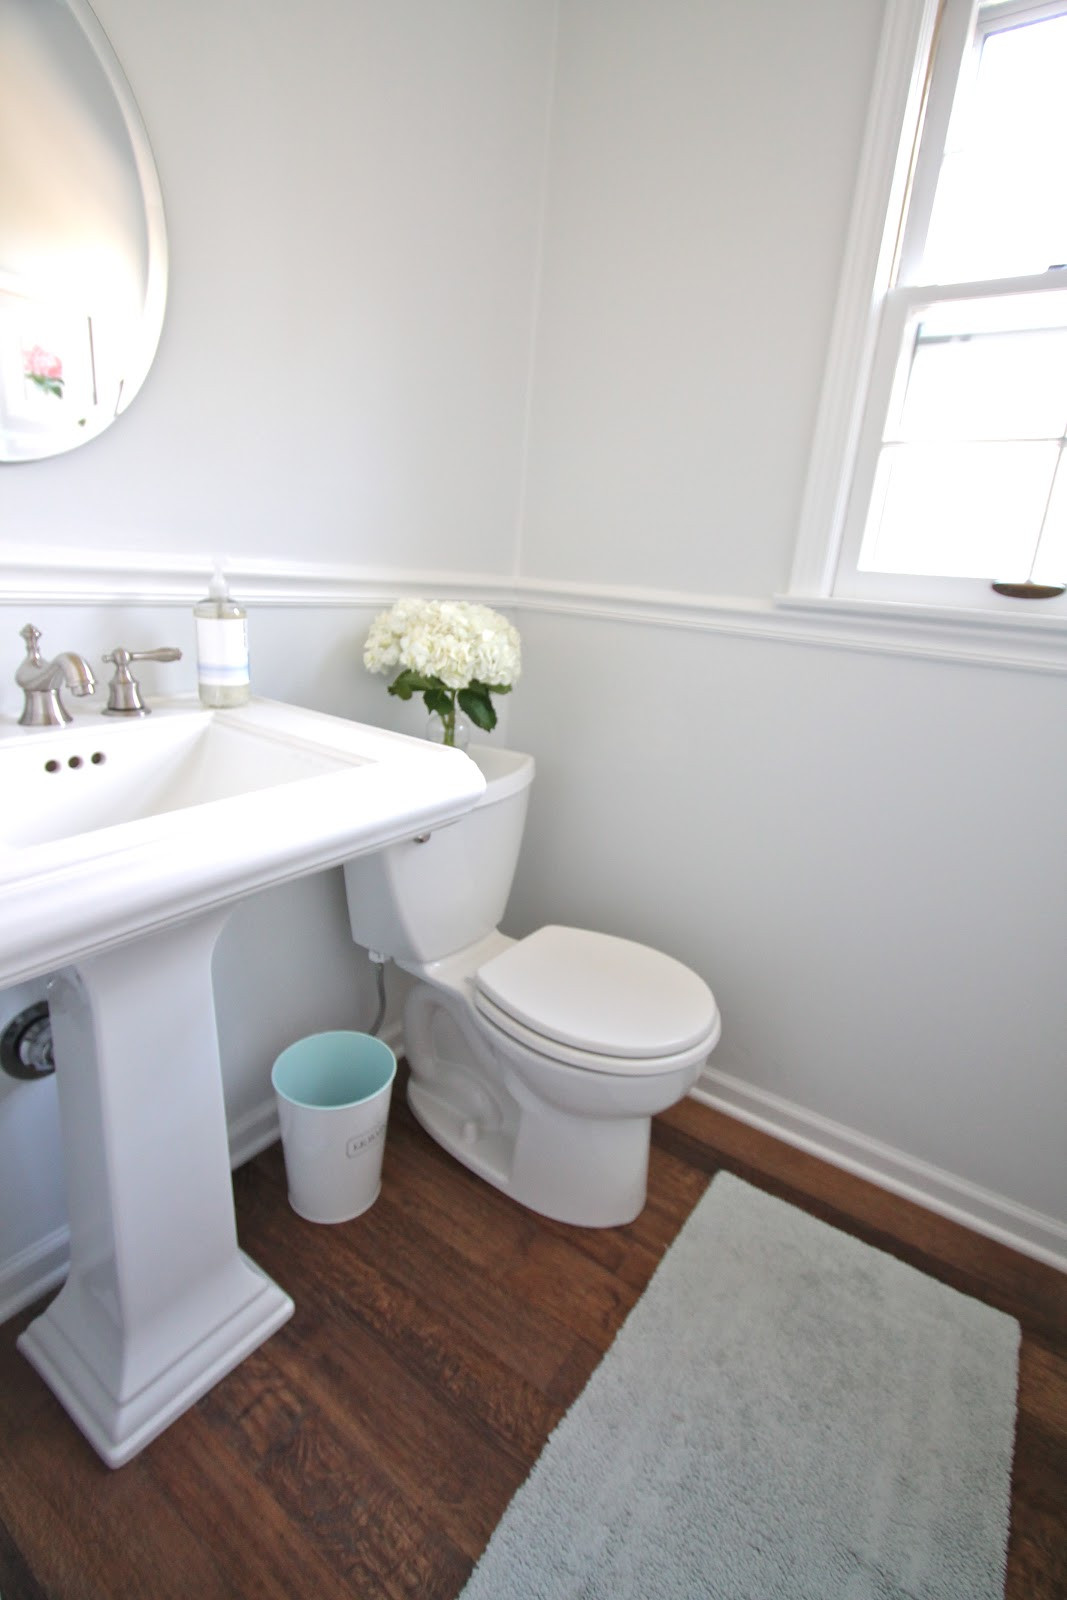 Best ideas about Diy Bathroom Remodel . Save or Pin DIY Bathroom Remodel Julie Blanner Now.